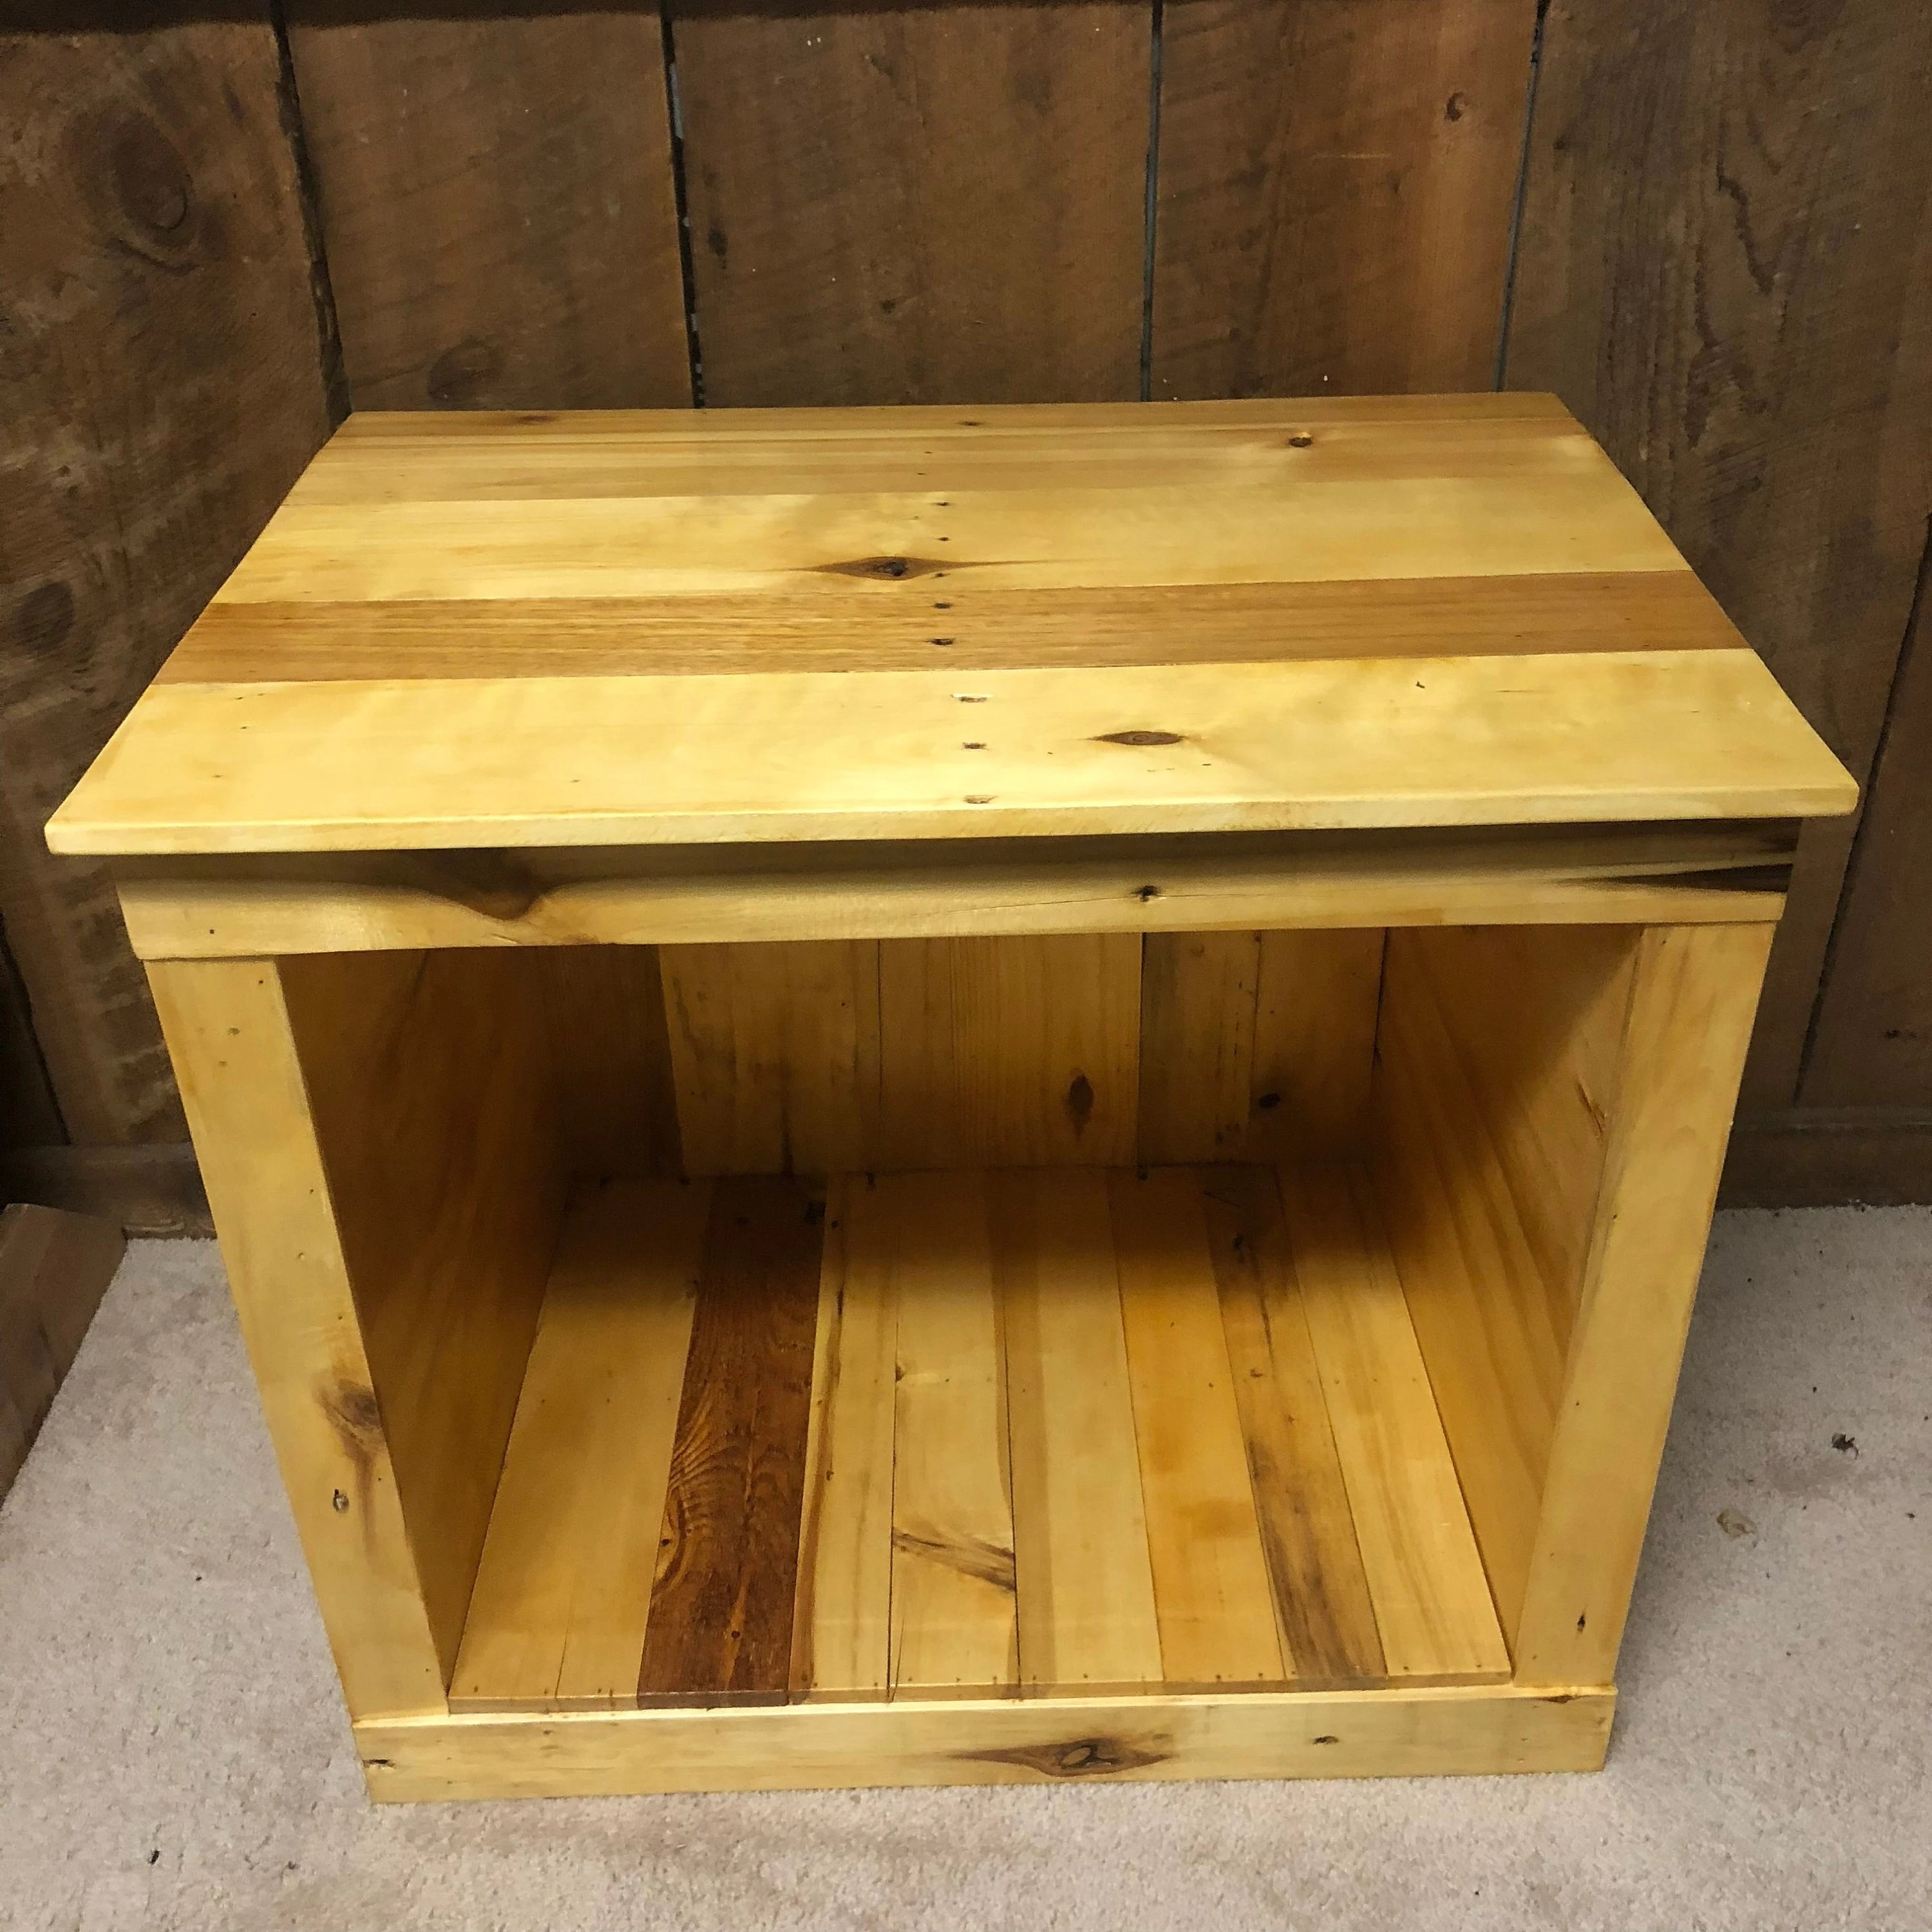 Half Inch Plywood Recycled Pallet Wood End Bedside Table